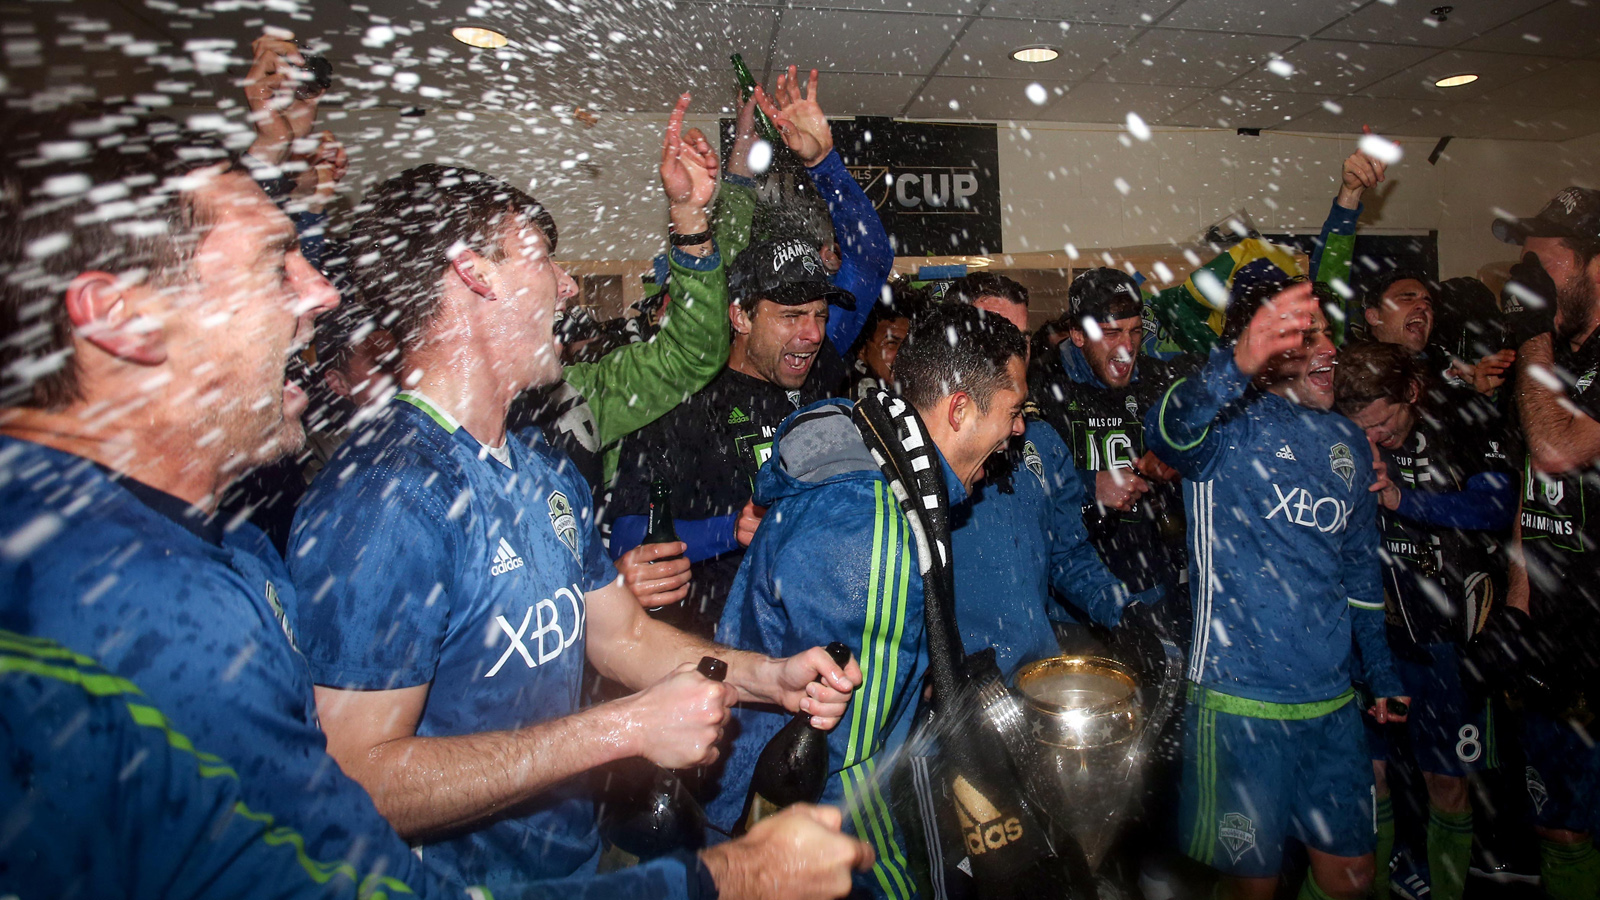 Dec 10, 2016; Toronto, Canada; Seattle Sounders celebrate their win over Toronto FC with champagne in the 2016 MLS Cup at BMO Field. Mandatory Credit: Geoff Burke-USA TODAY Sports